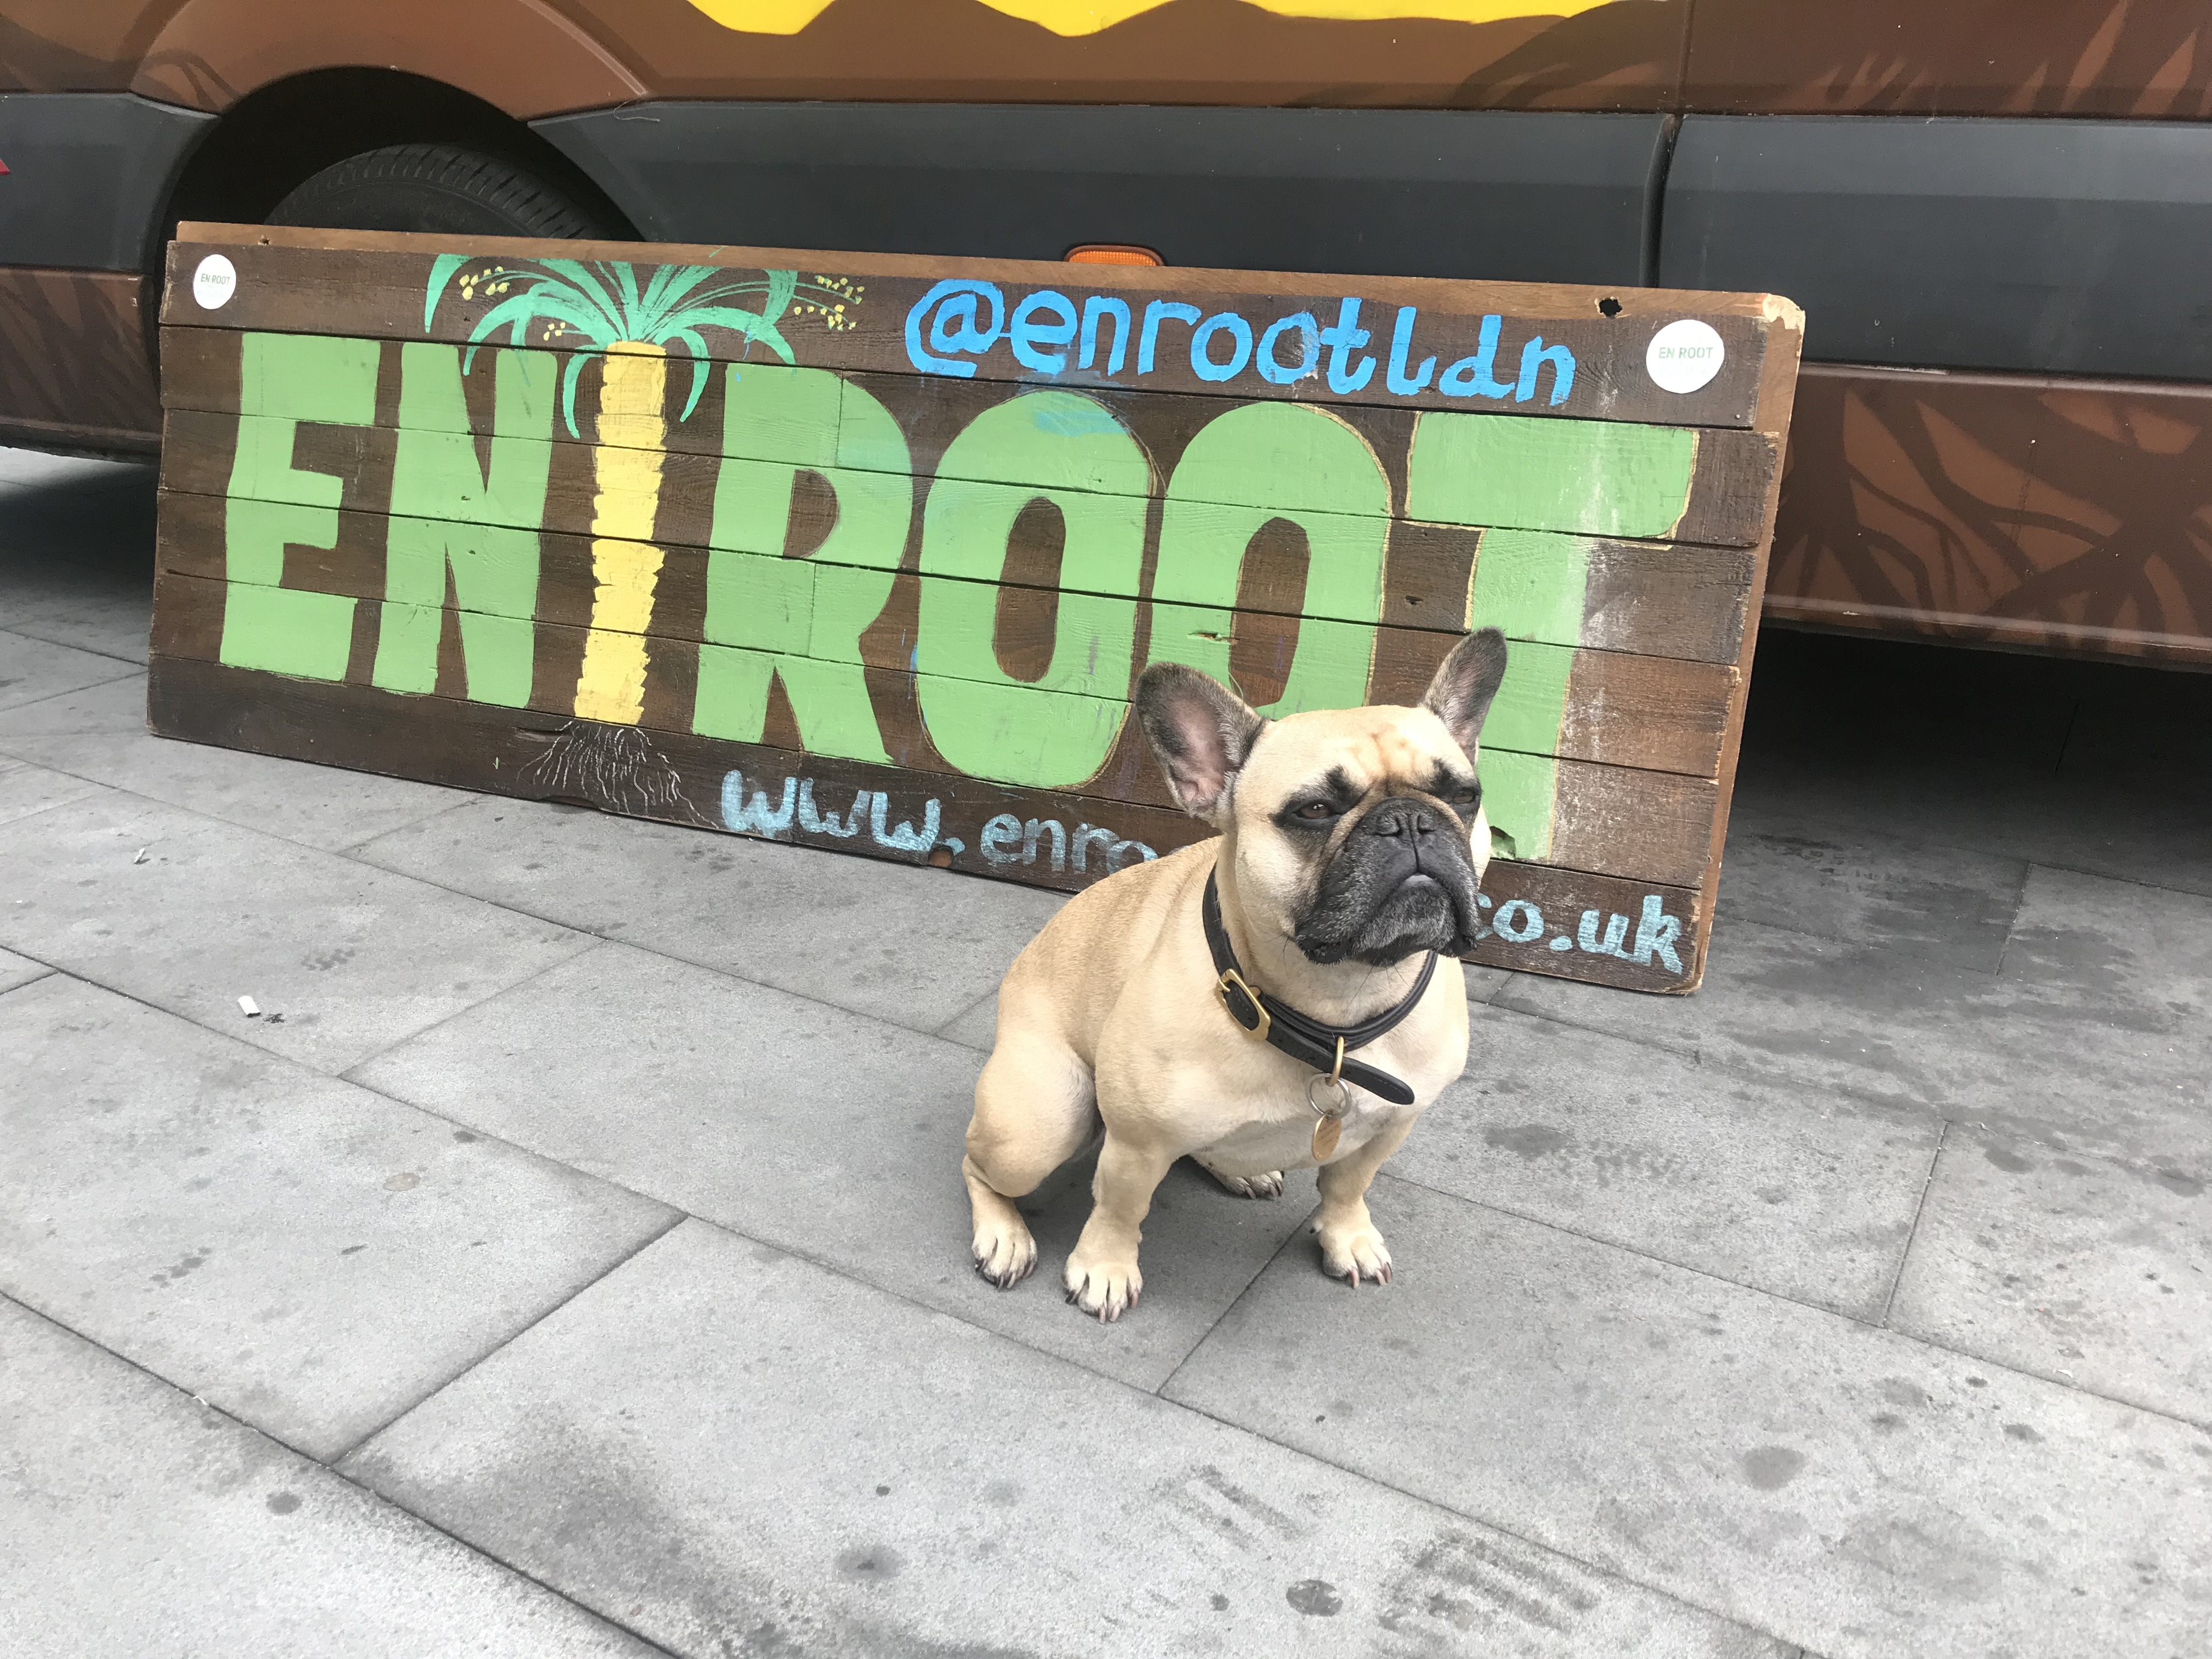 Elphie The Frenchie & En Root